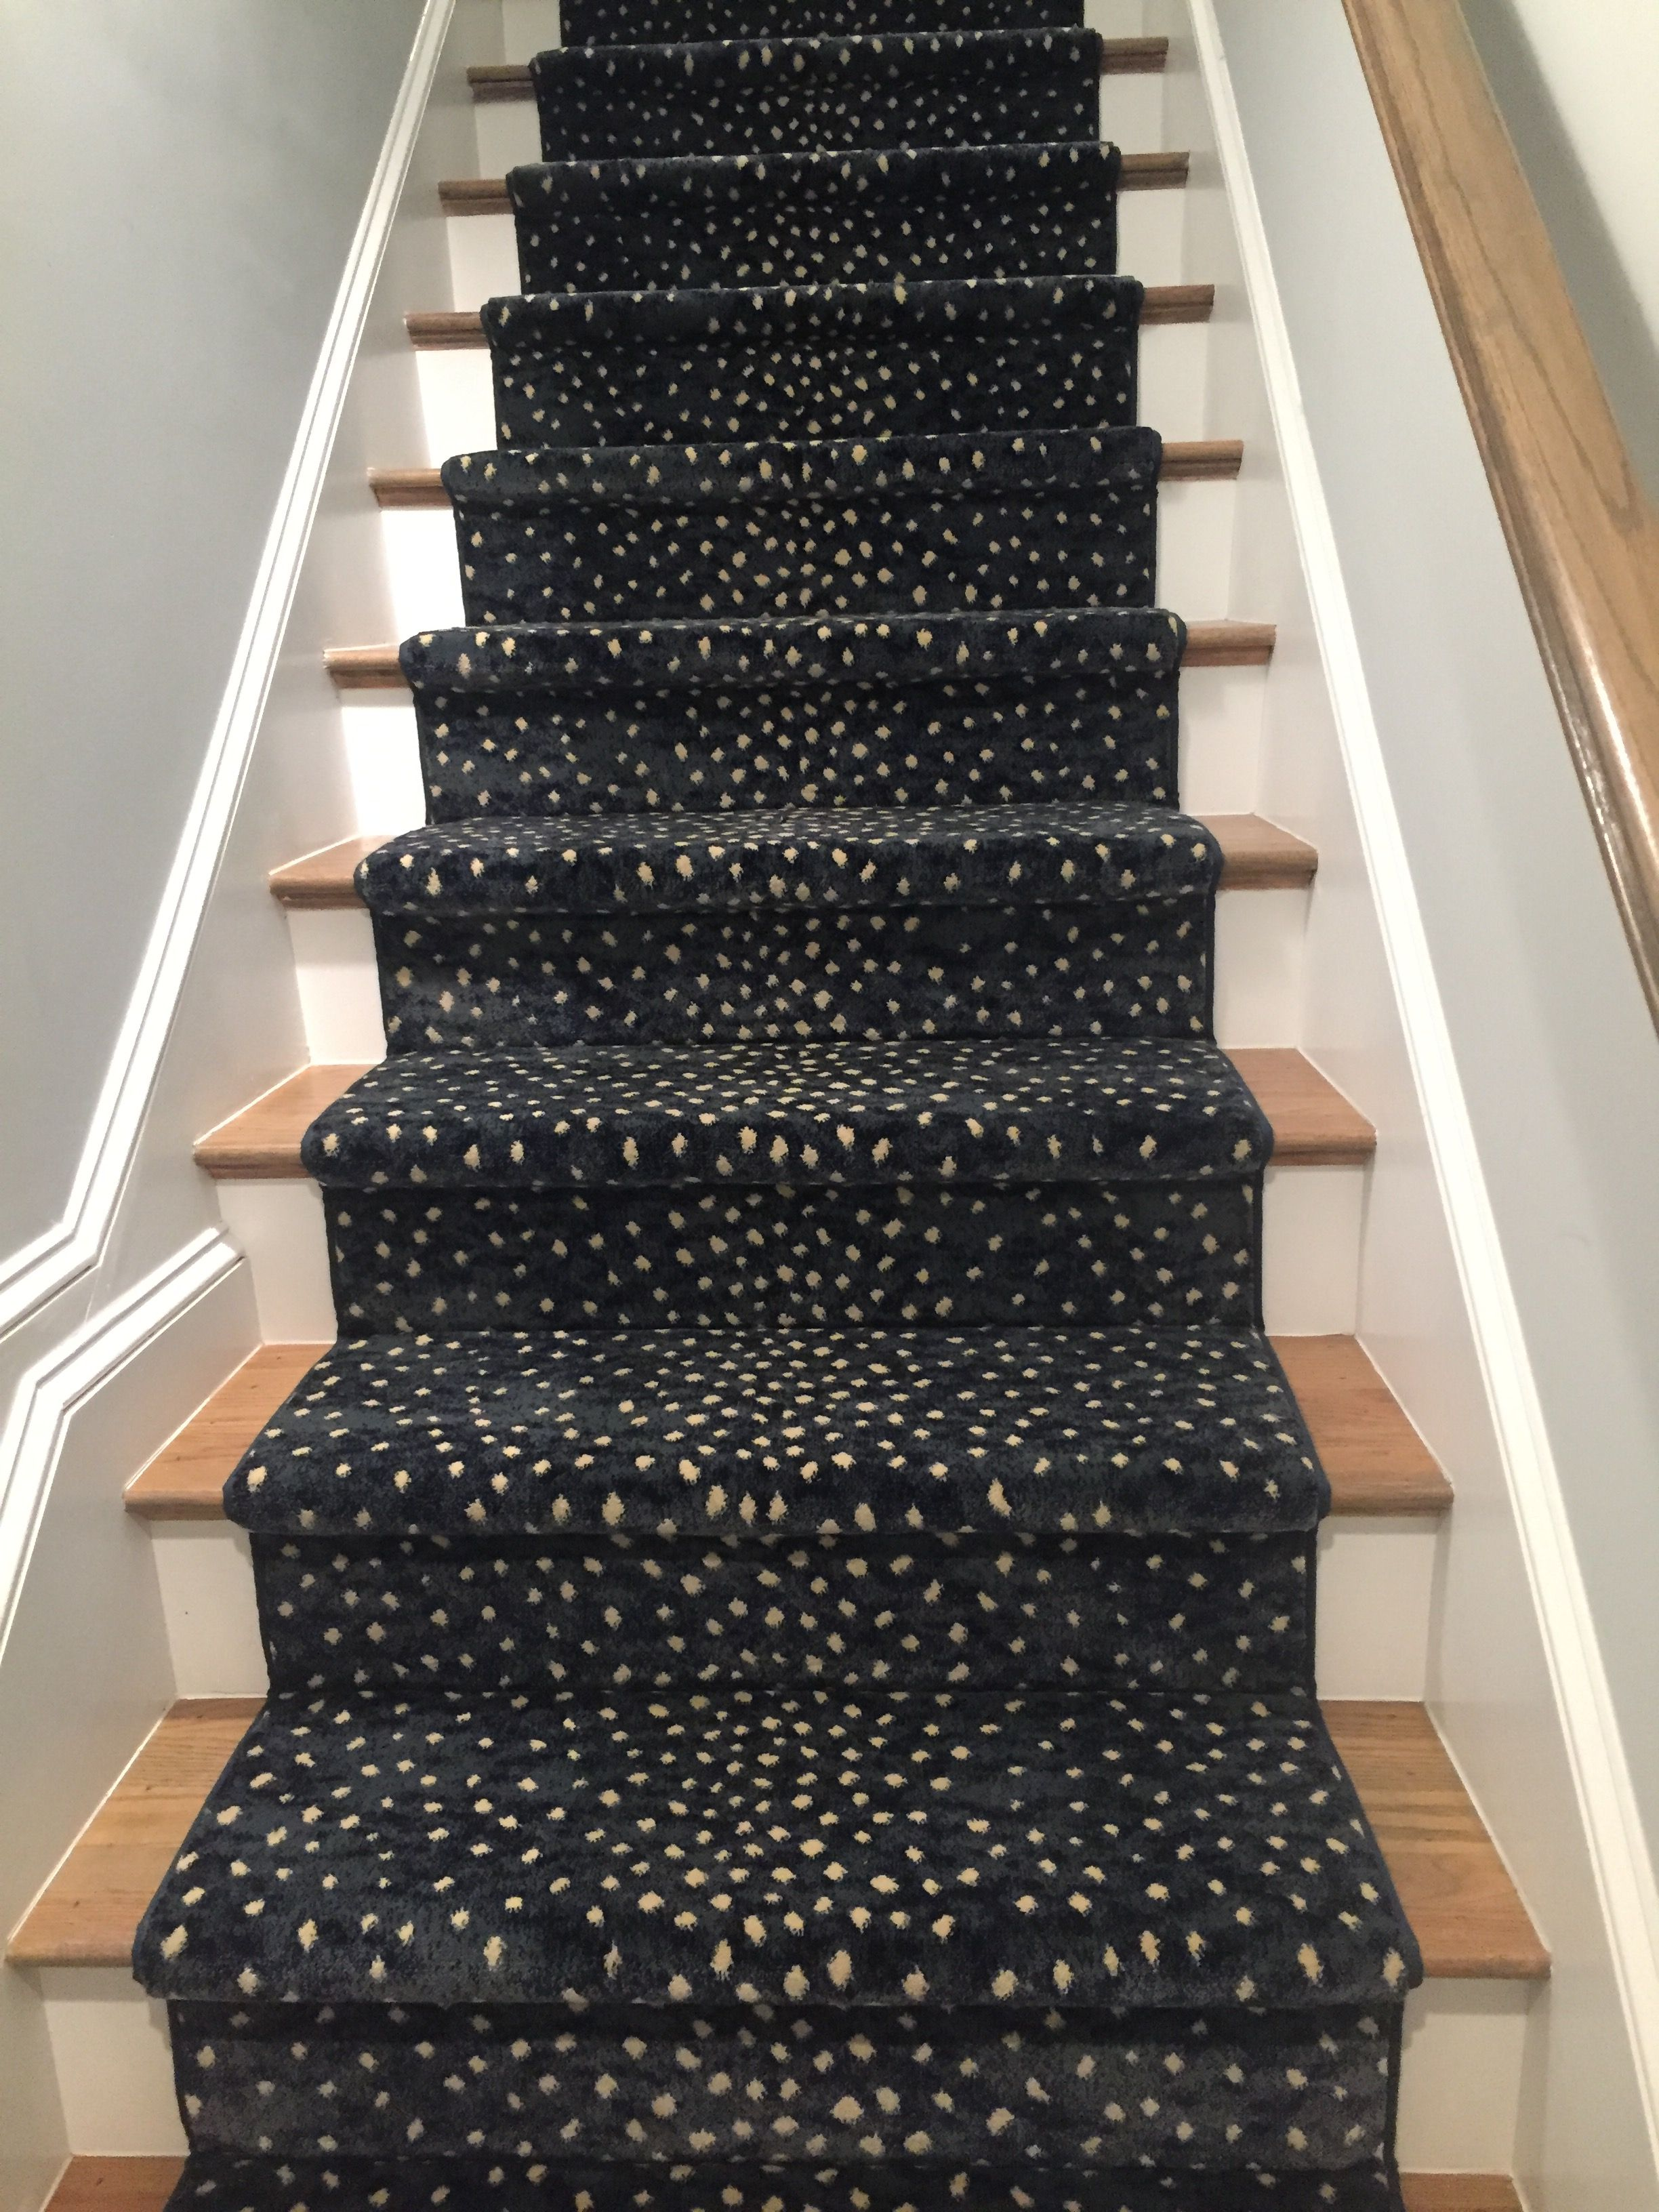 Mill Prestige Style Derning Color Blue Diy Carpet Stair | Printed Carpet For Stairs | High Traffic | Gray | Karastan Patterned | Georgian | Middle Open Concept